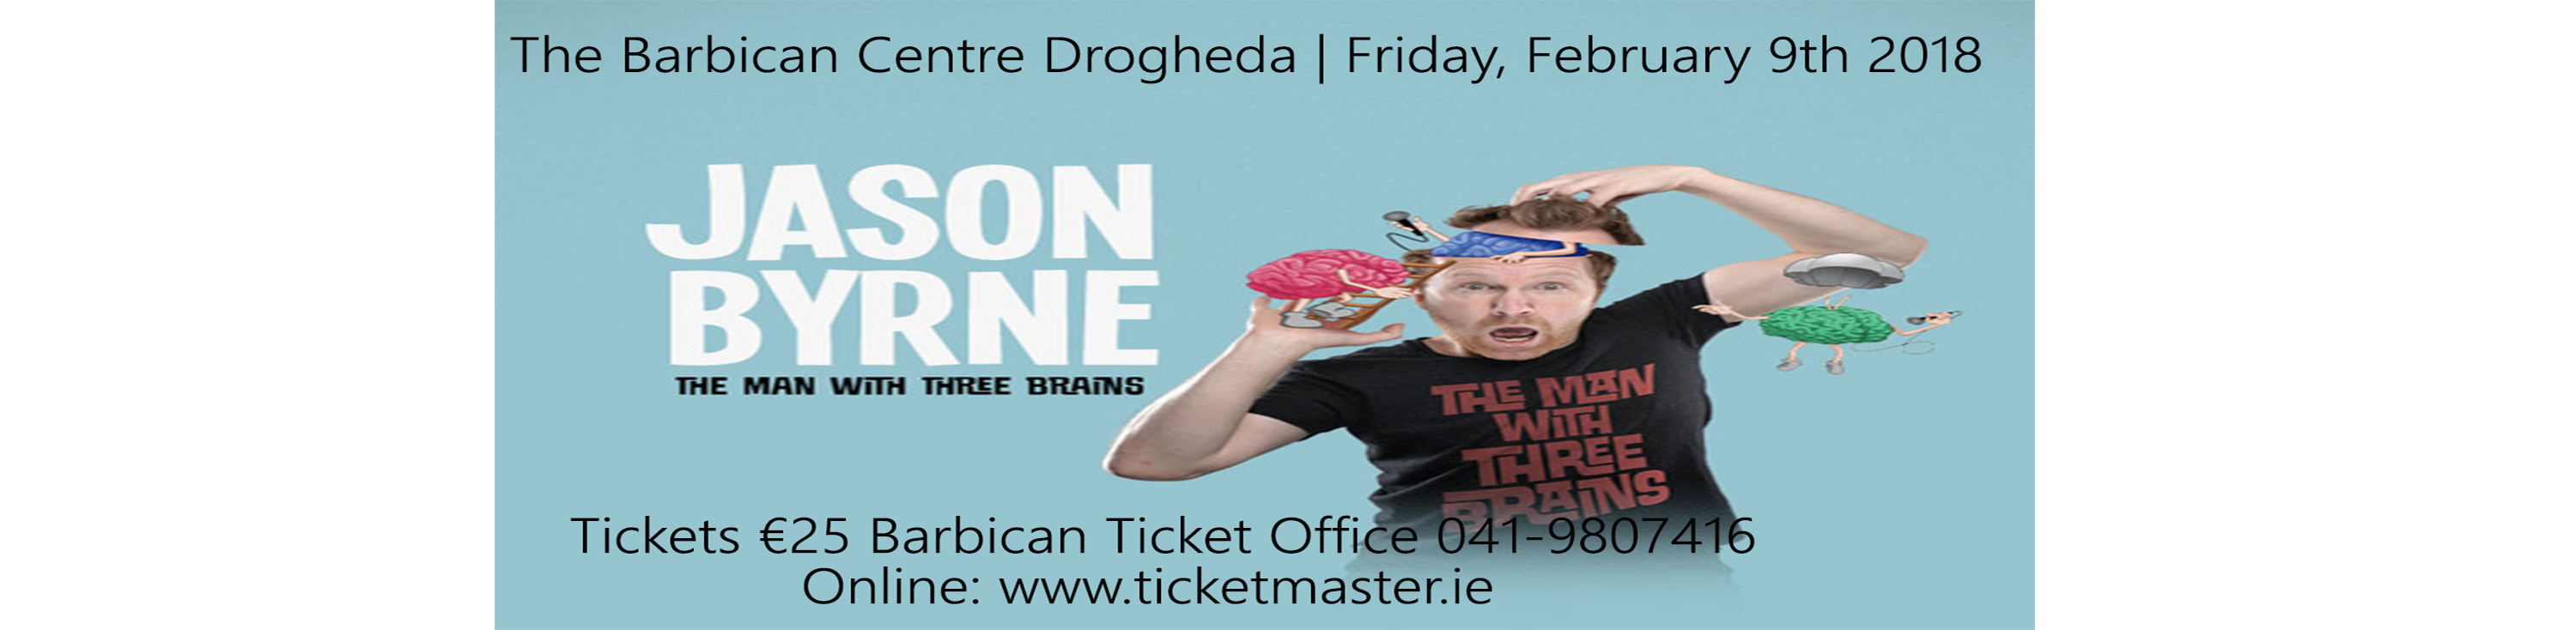 http://www.thebarbican.ie/events/jason-byrne-the-man-with-3-brains/